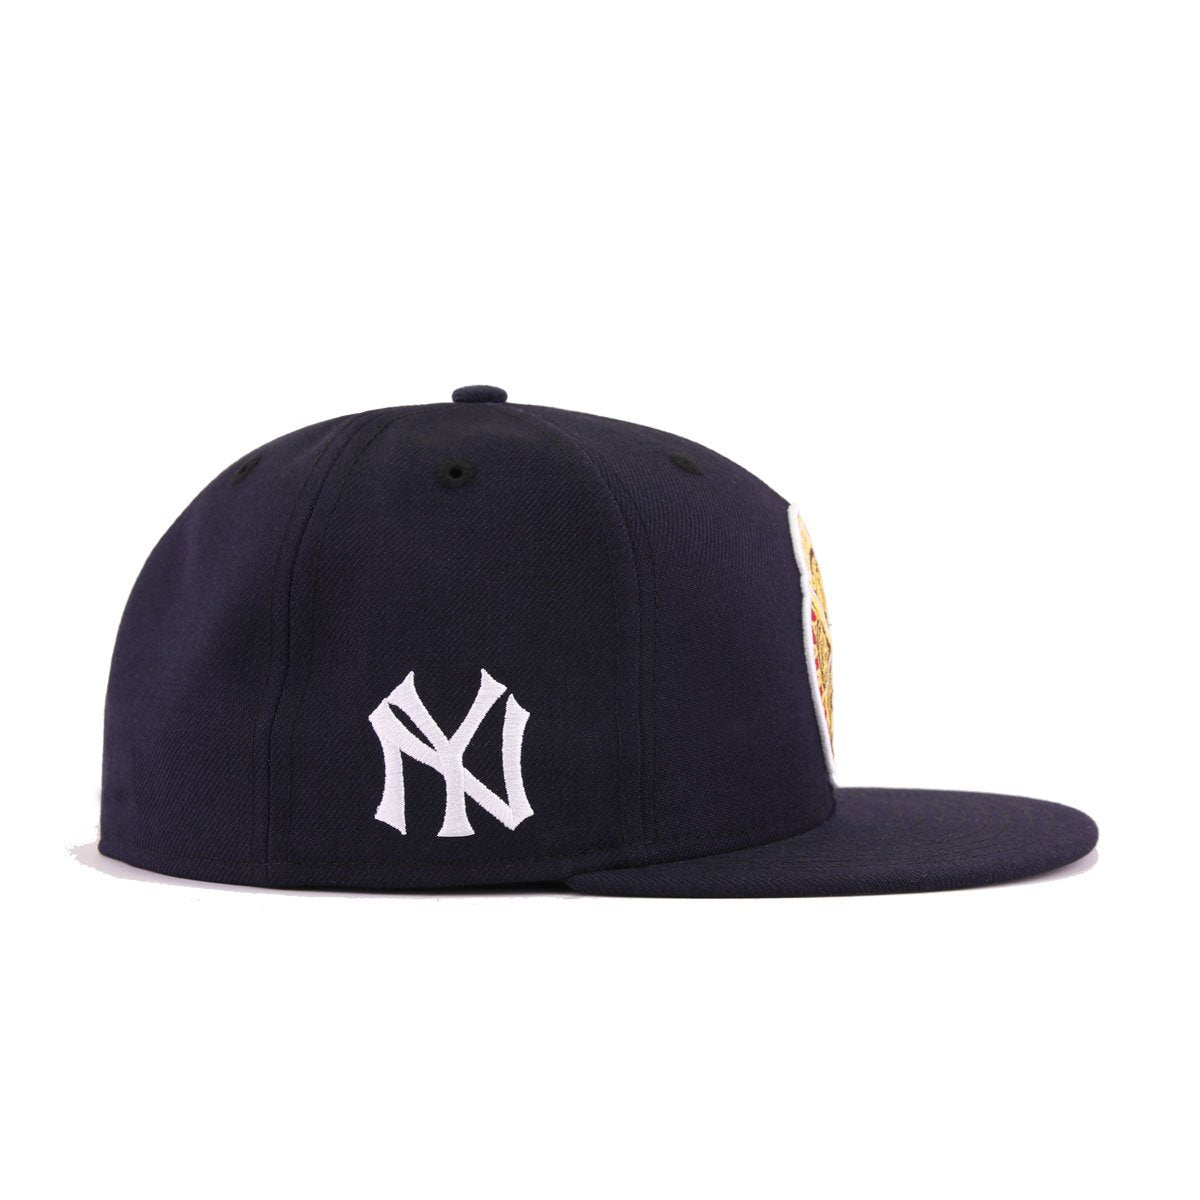 New York Yankees Navy 1938 World Series Cooperstown New Era 59Fifty Fitted